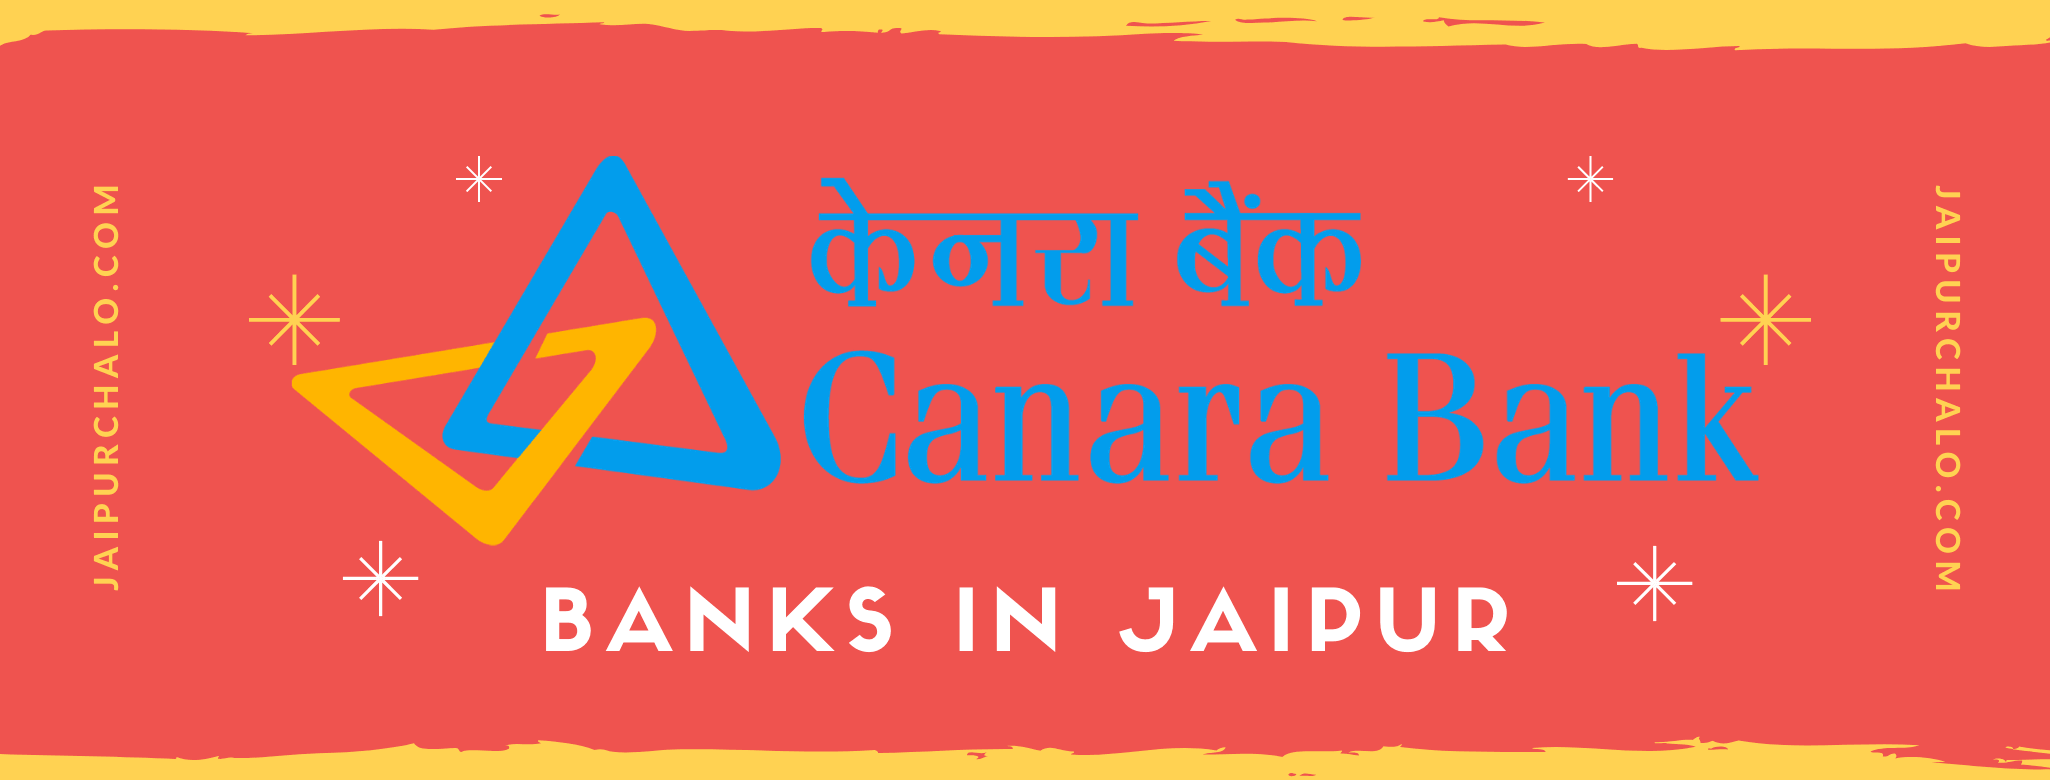 Canara bank in jaipur